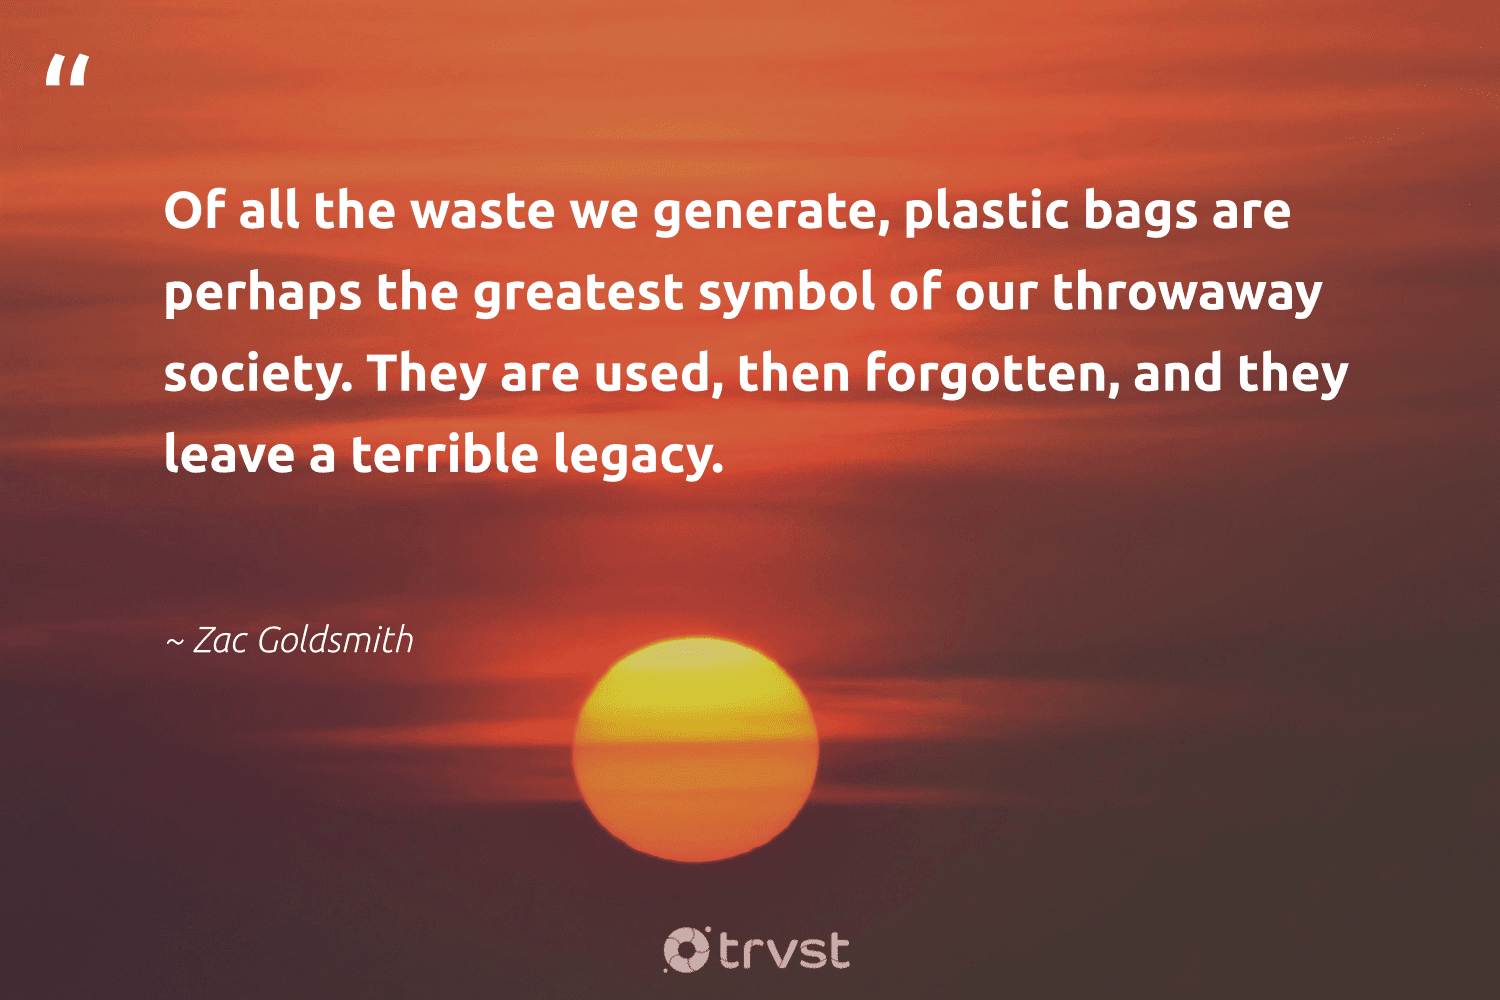 """""""Of all the waste we generate, plastic bags are perhaps the greatest symbol of our throwaway society. They are used, then forgotten, and they leave a terrible legacy.""""  - Zac Goldsmith #trvst #quotes #plasticwaste #waste #plastic #society #legacy #betterfortheplanet #wastenotwantnot #takeaction #banthebag #dosomething"""